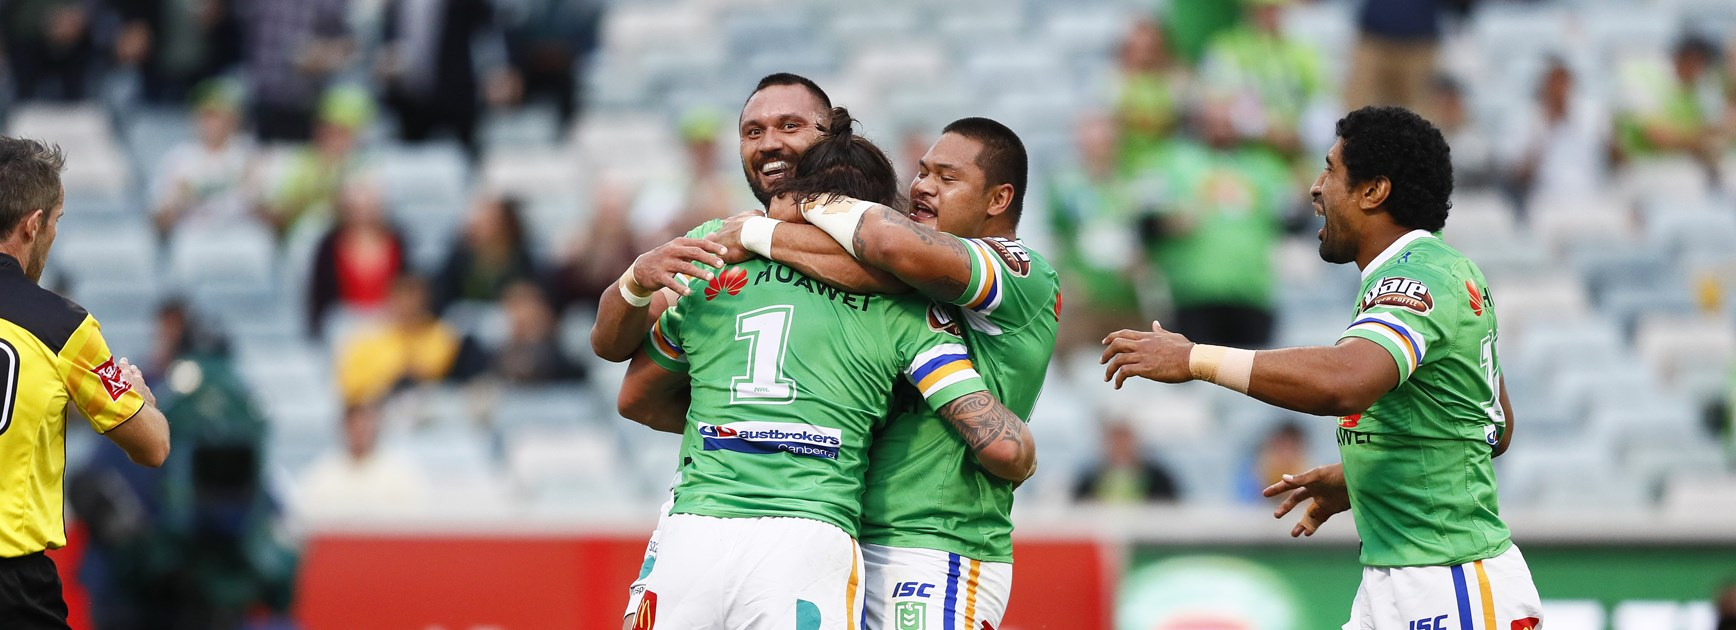 NRL Match Report: Raiders v Knights